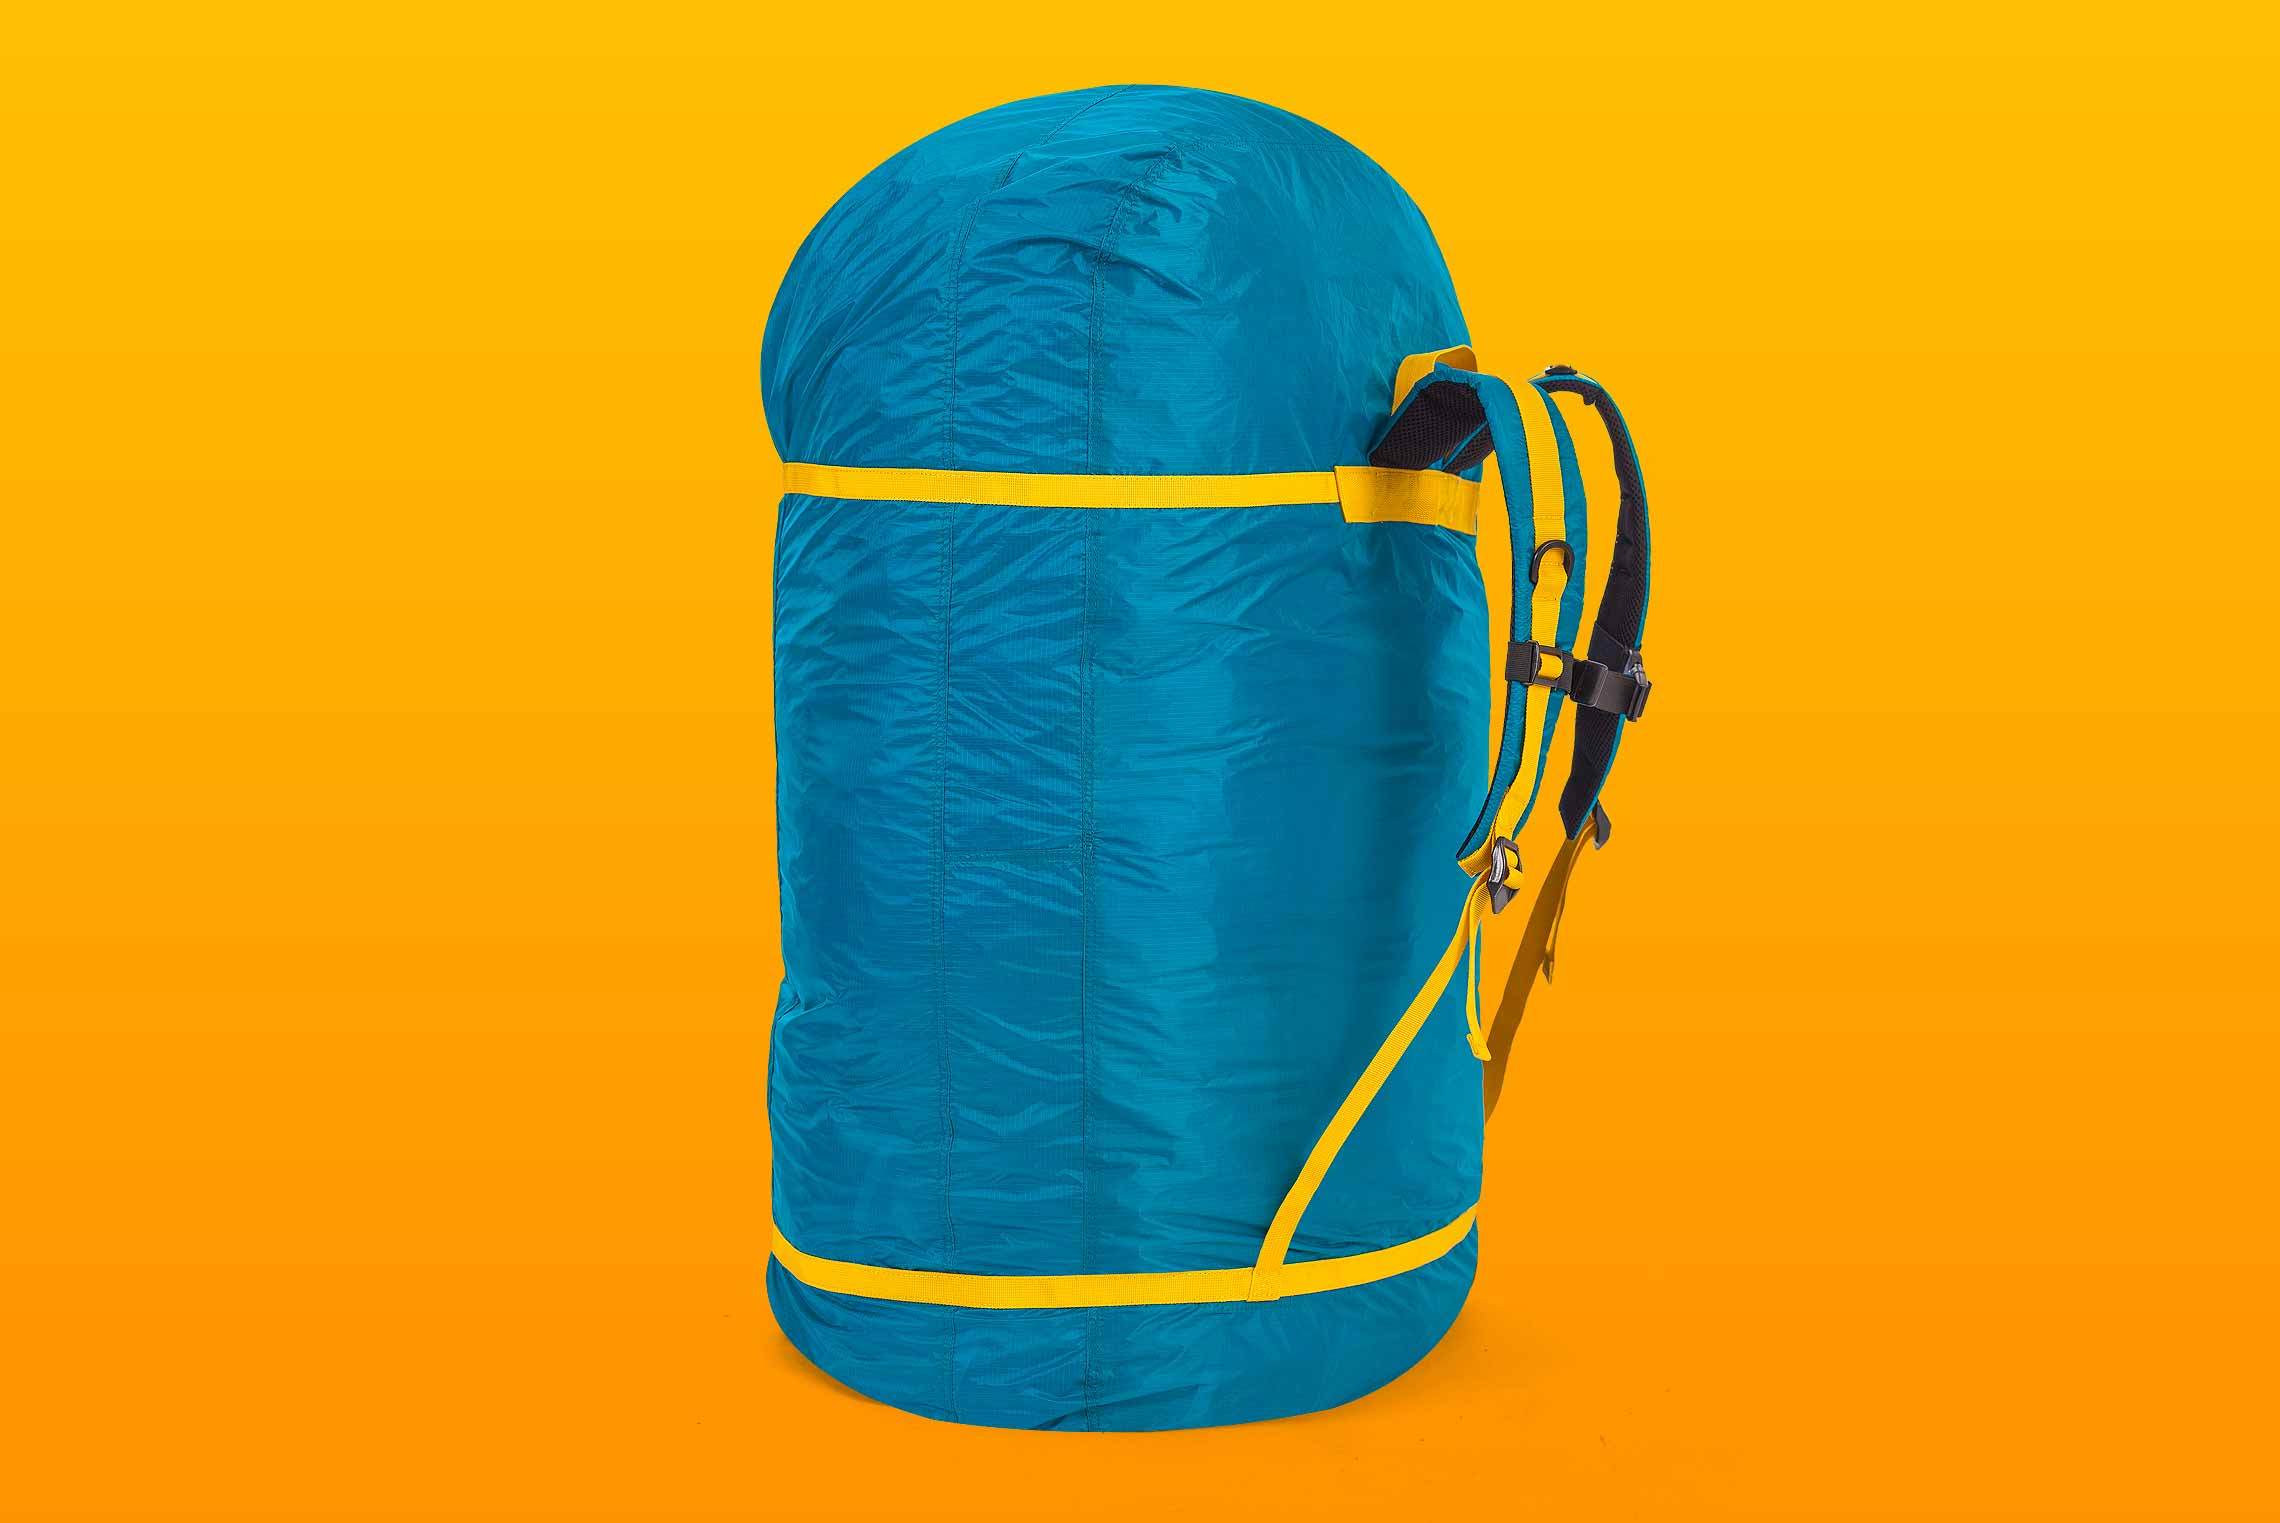 icaro-paragliders-fast-pack-bag_2015_04